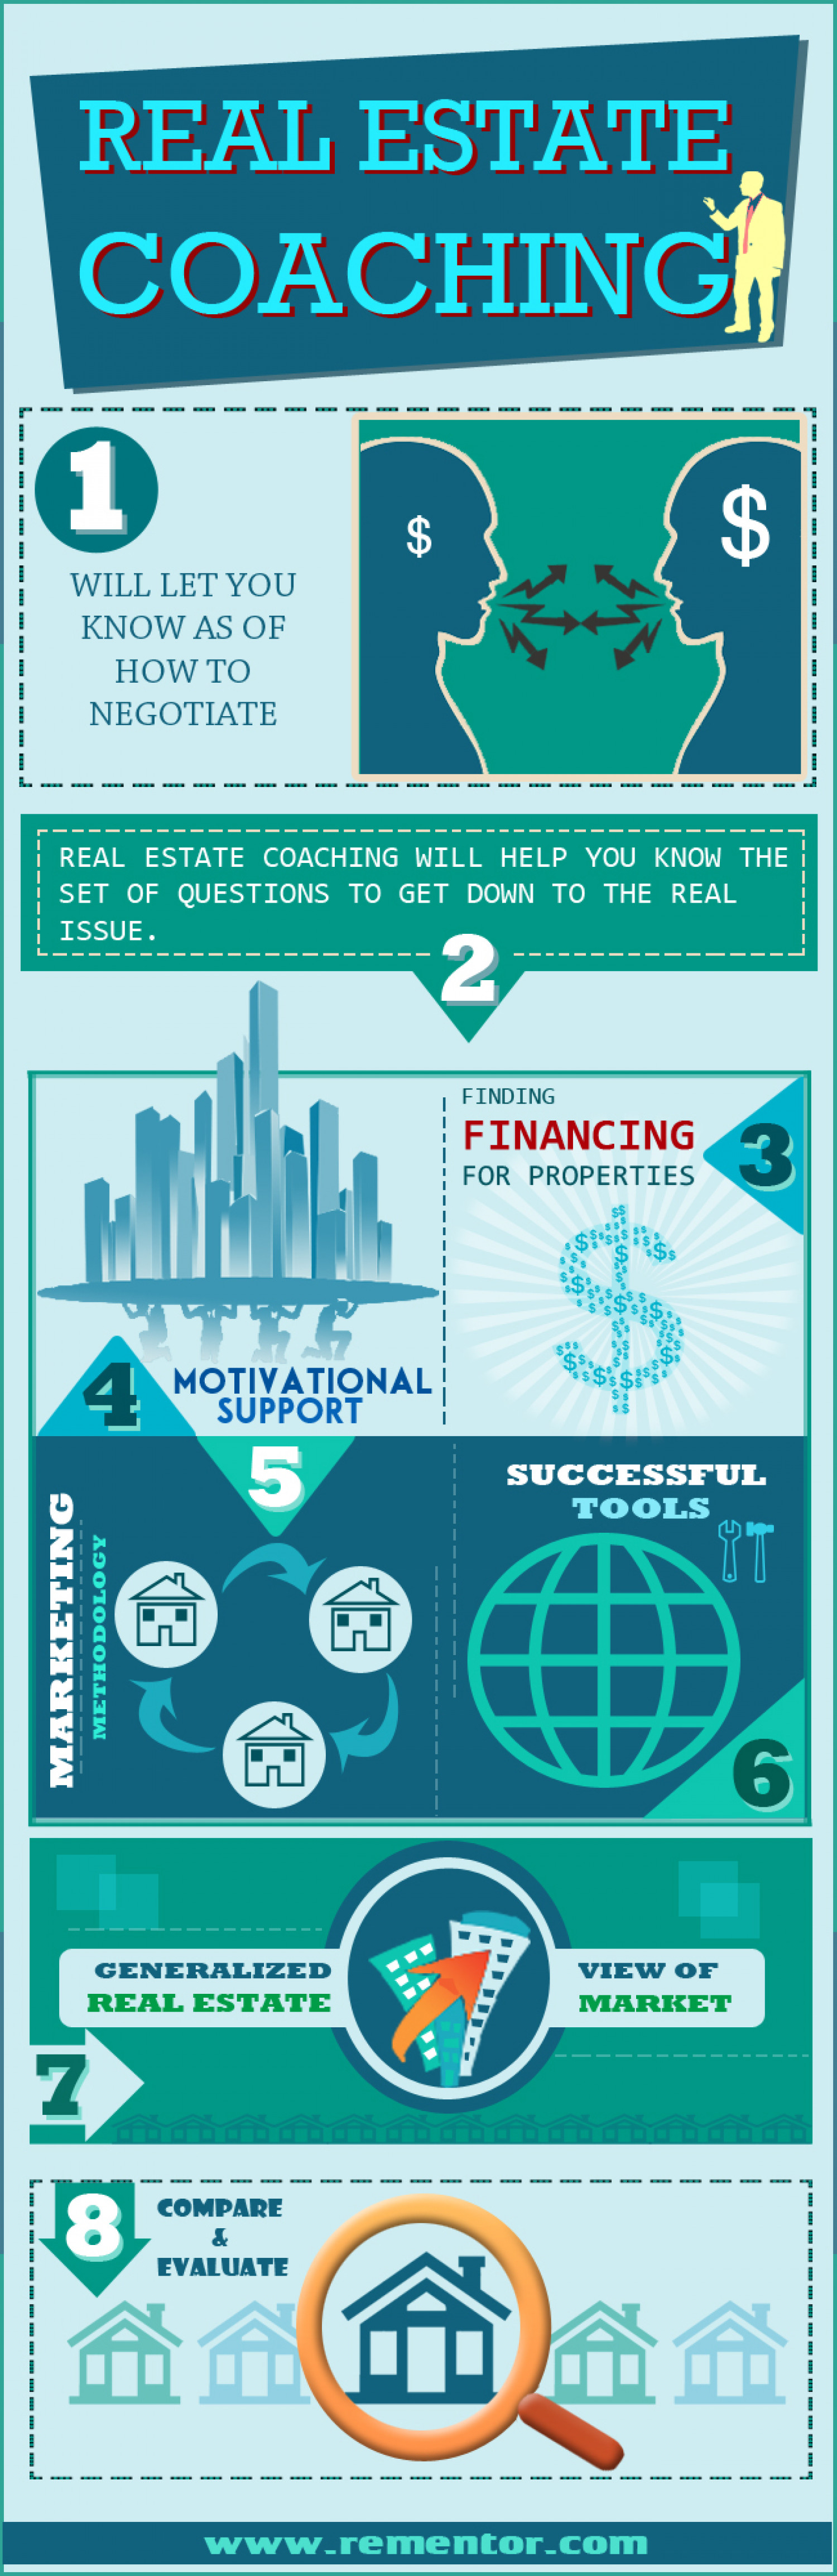 Real Estate Coaching Infographic